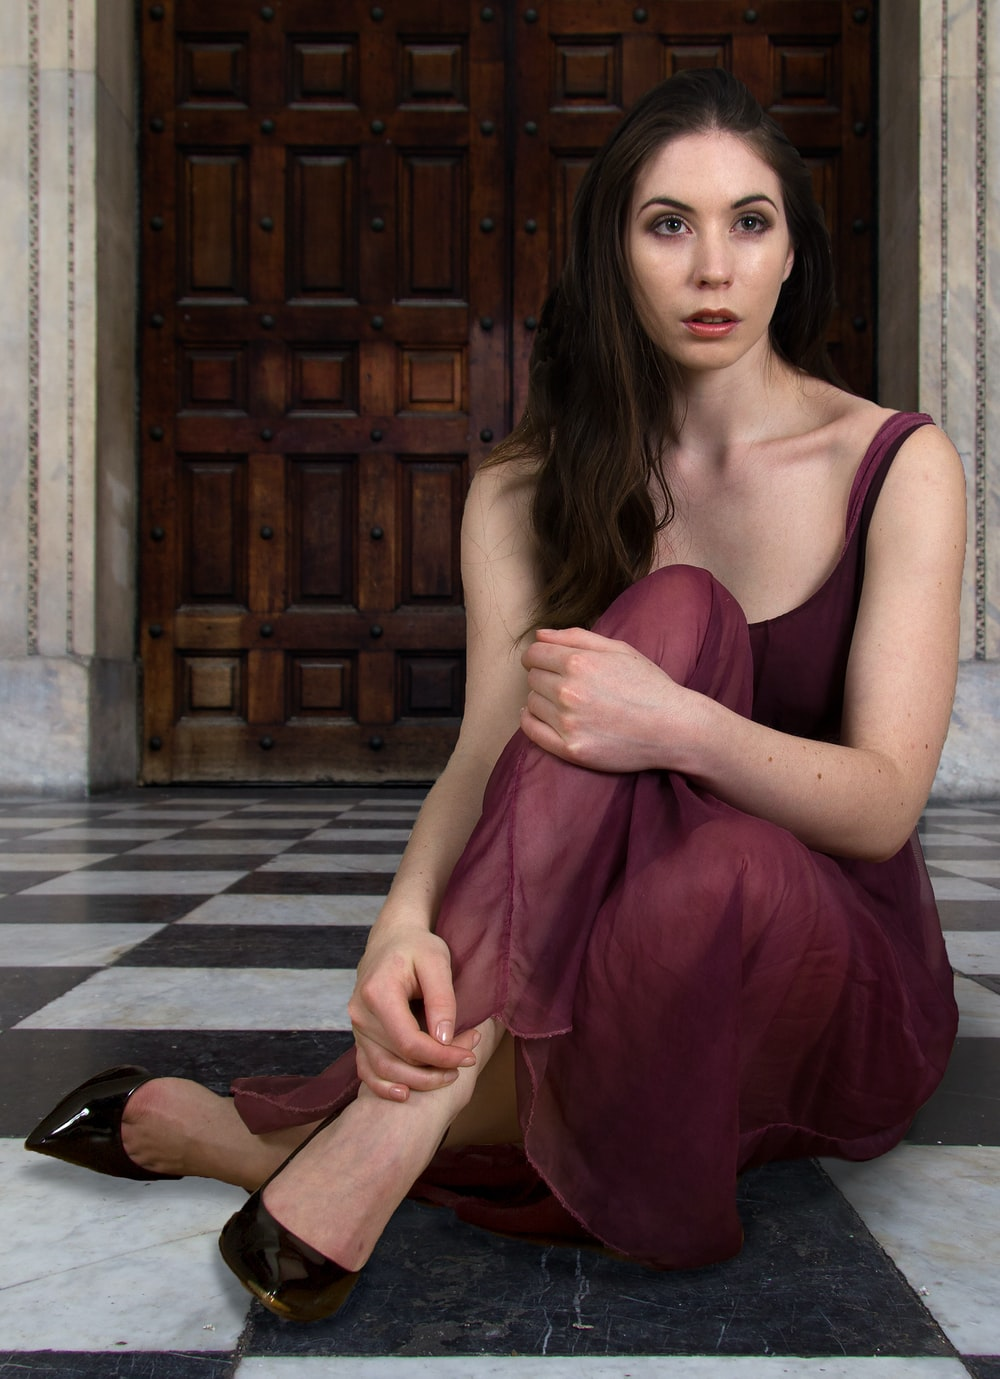 woman in burgundy dress sits on the floor